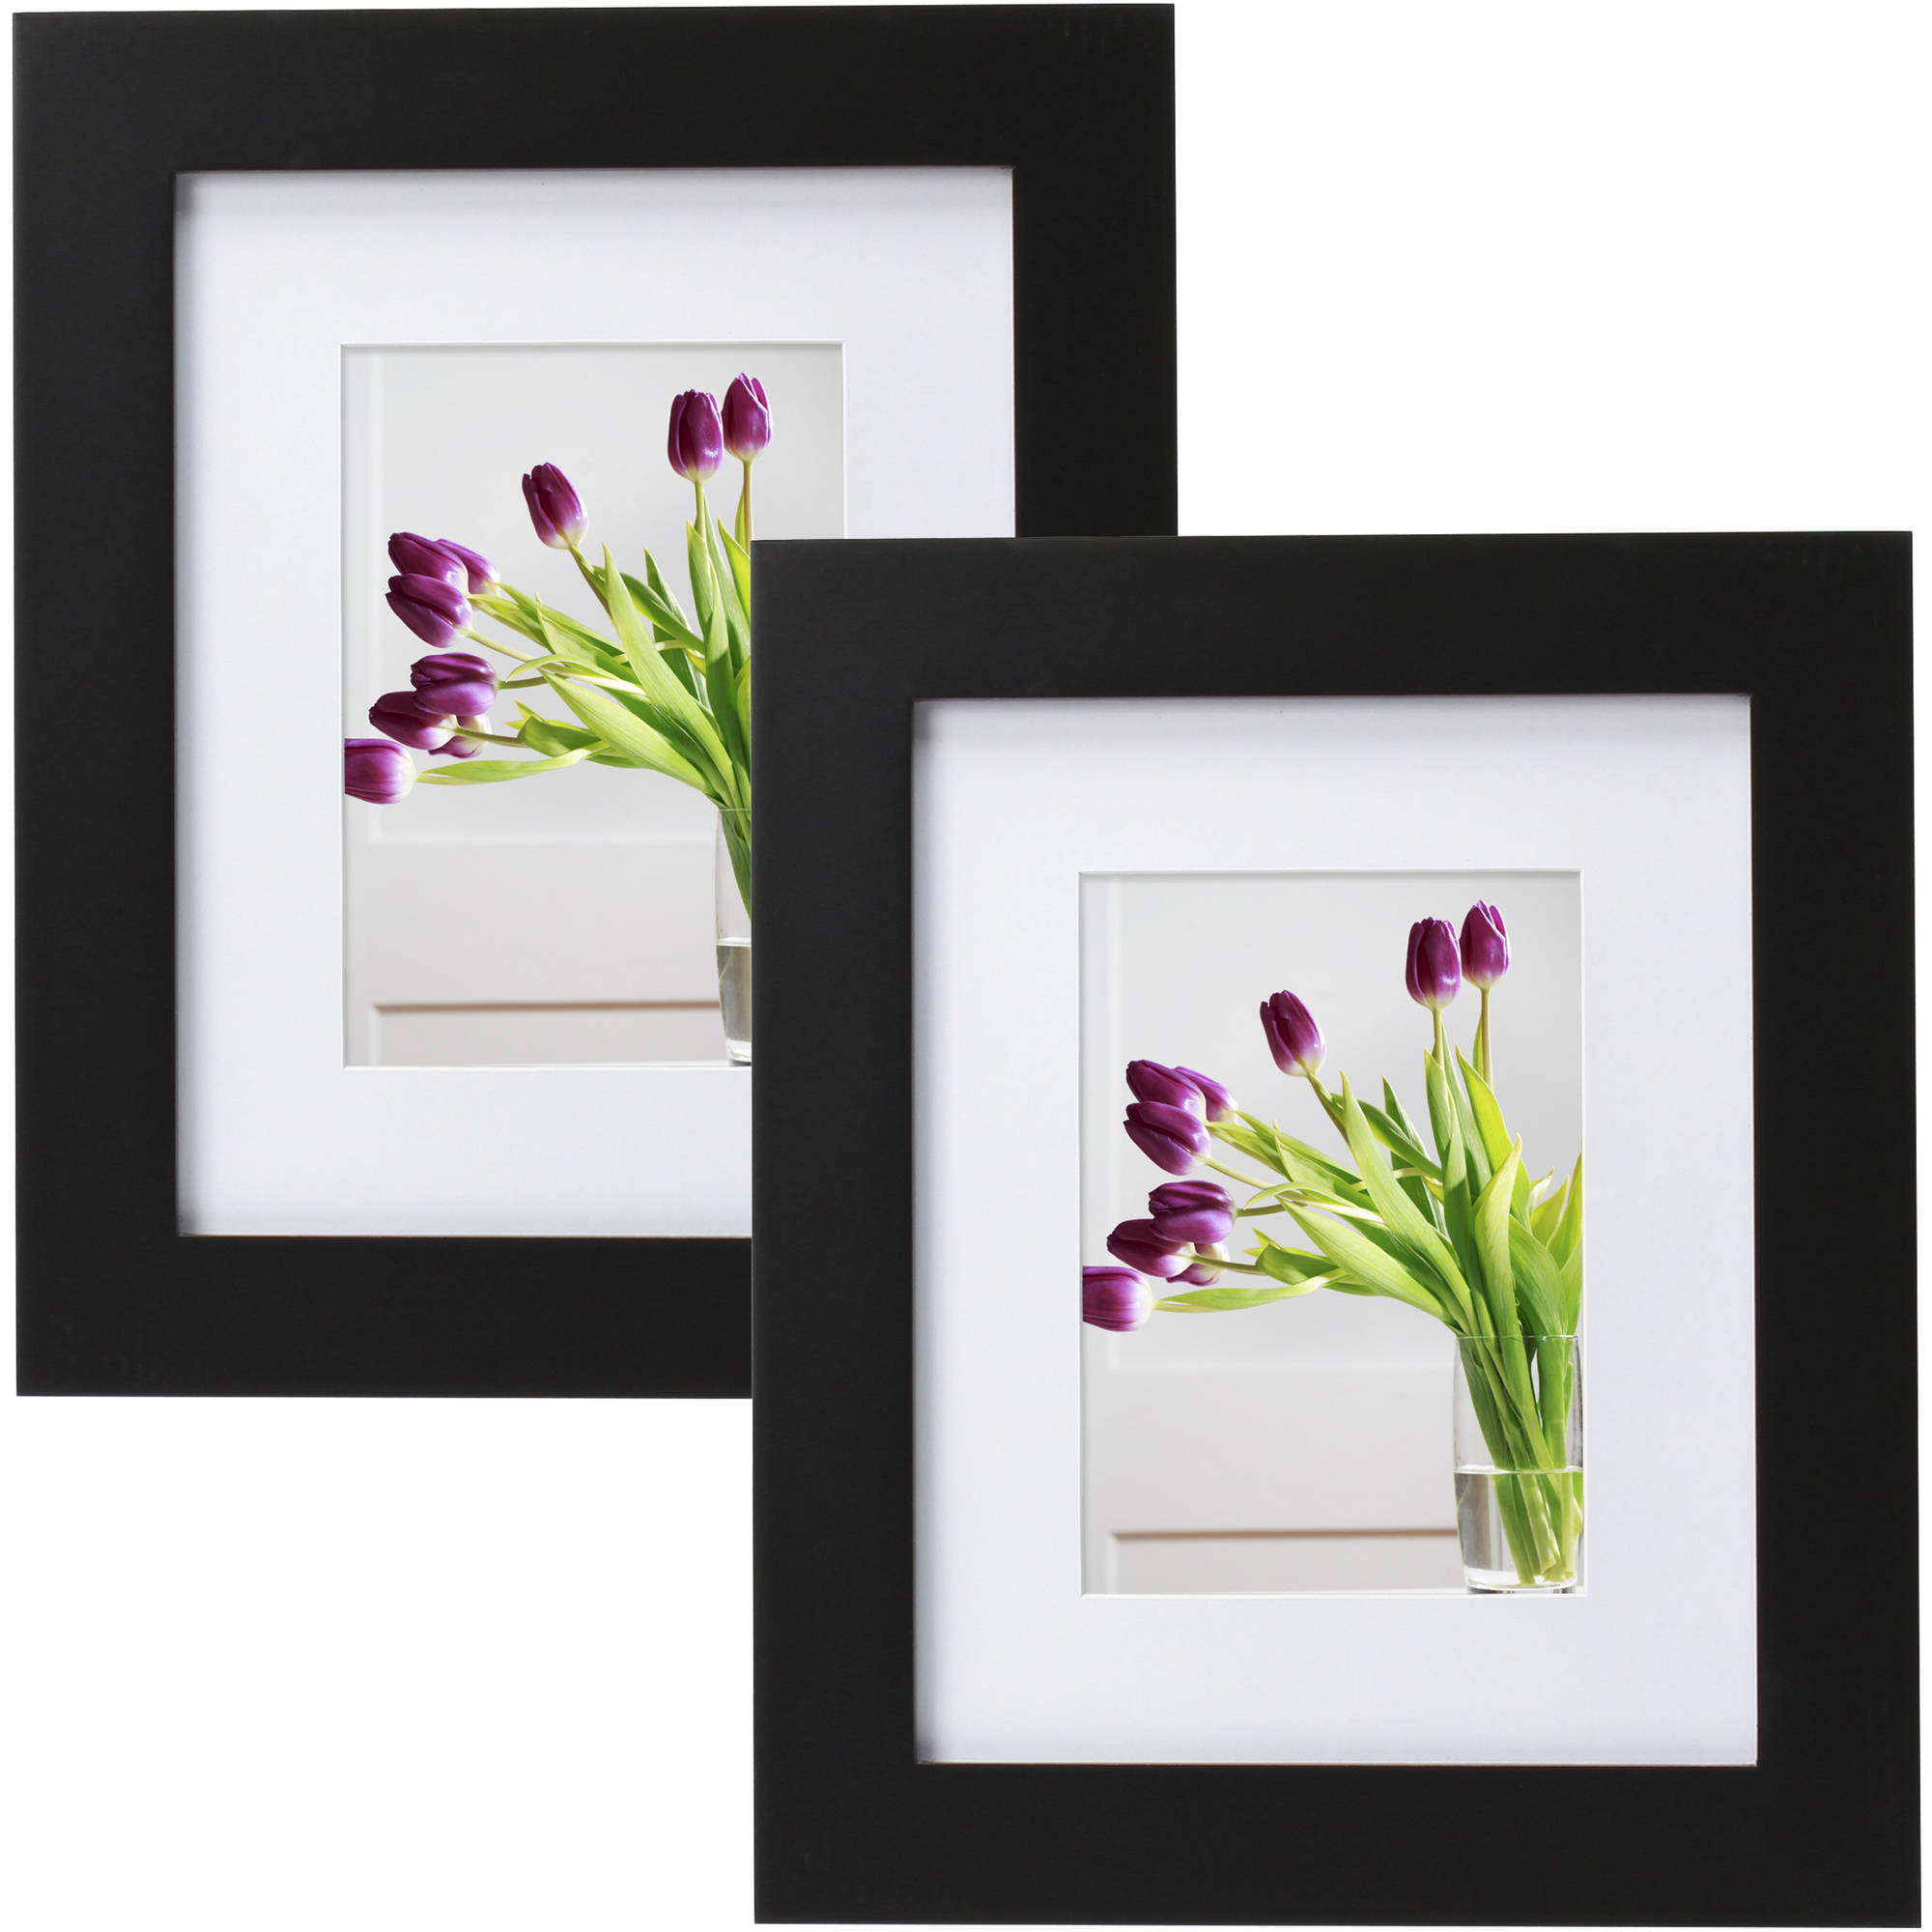 "Mainstays Museum 8"" x 10"" Matted to 5"" x 7"" Picture Frame, Black, Set of 2"